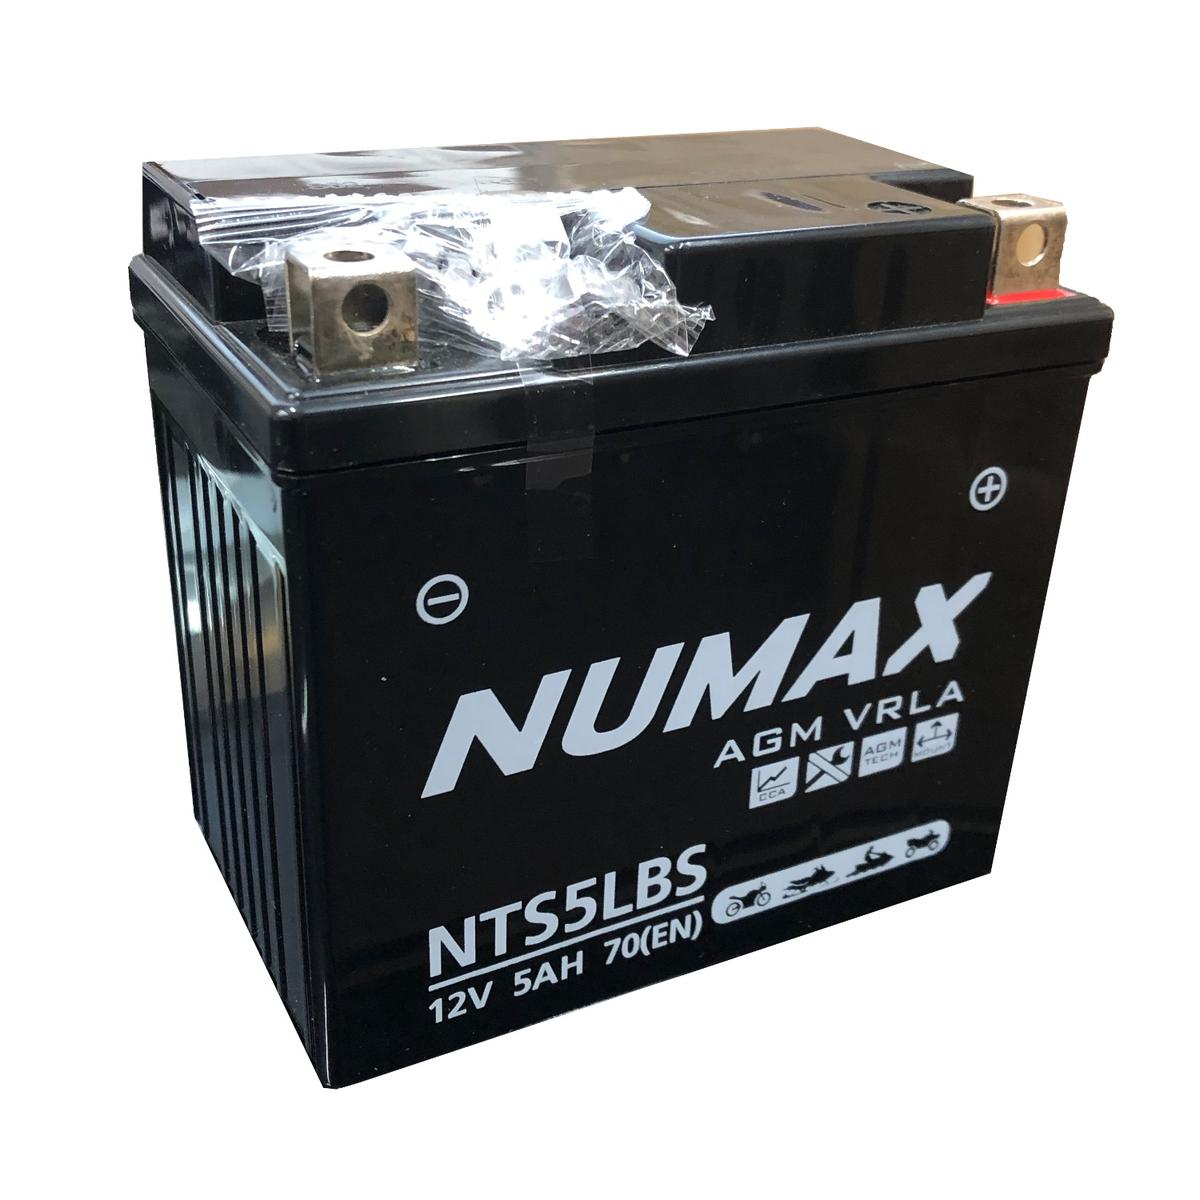 Numax NTS5LBS Honda City Fly 125 Scooter Battery NEW